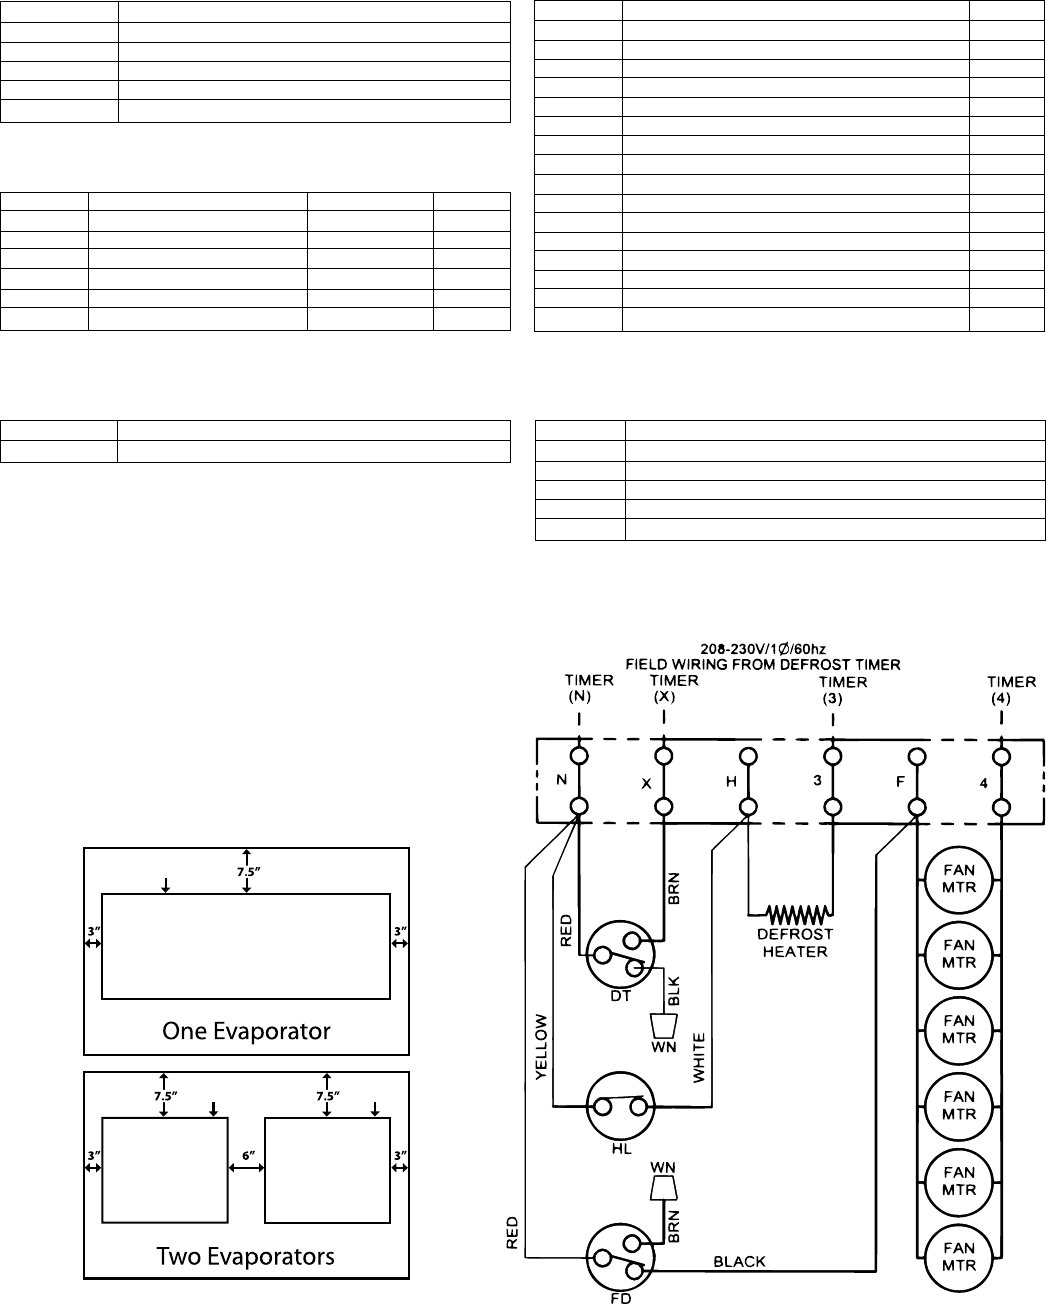 2f271777 ed48 431c affa 693c84f3fb6b bgb page 11 of heatcraft refrigeration products humidifier 25005601 heatcraft freezer wiring diagram at bayanpartner.co